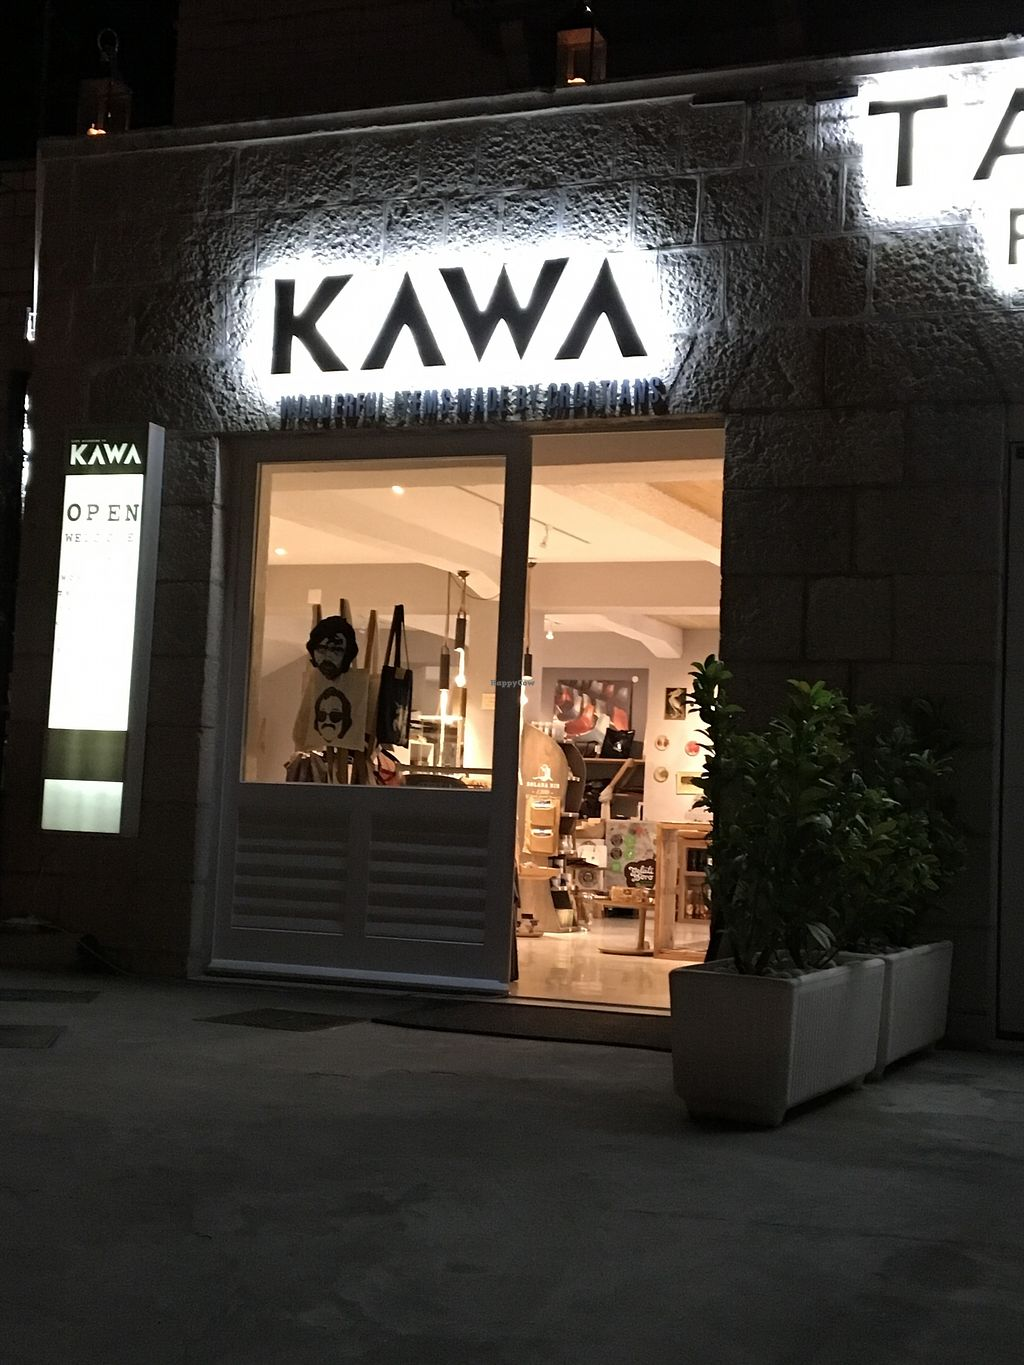 "Photo of Life According to KAWA  by <a href=""/members/profile/JJones315"">JJones315</a> <br/>Exterior <br/> October 9, 2017  - <a href='/contact/abuse/image/93598/313728'>Report</a>"